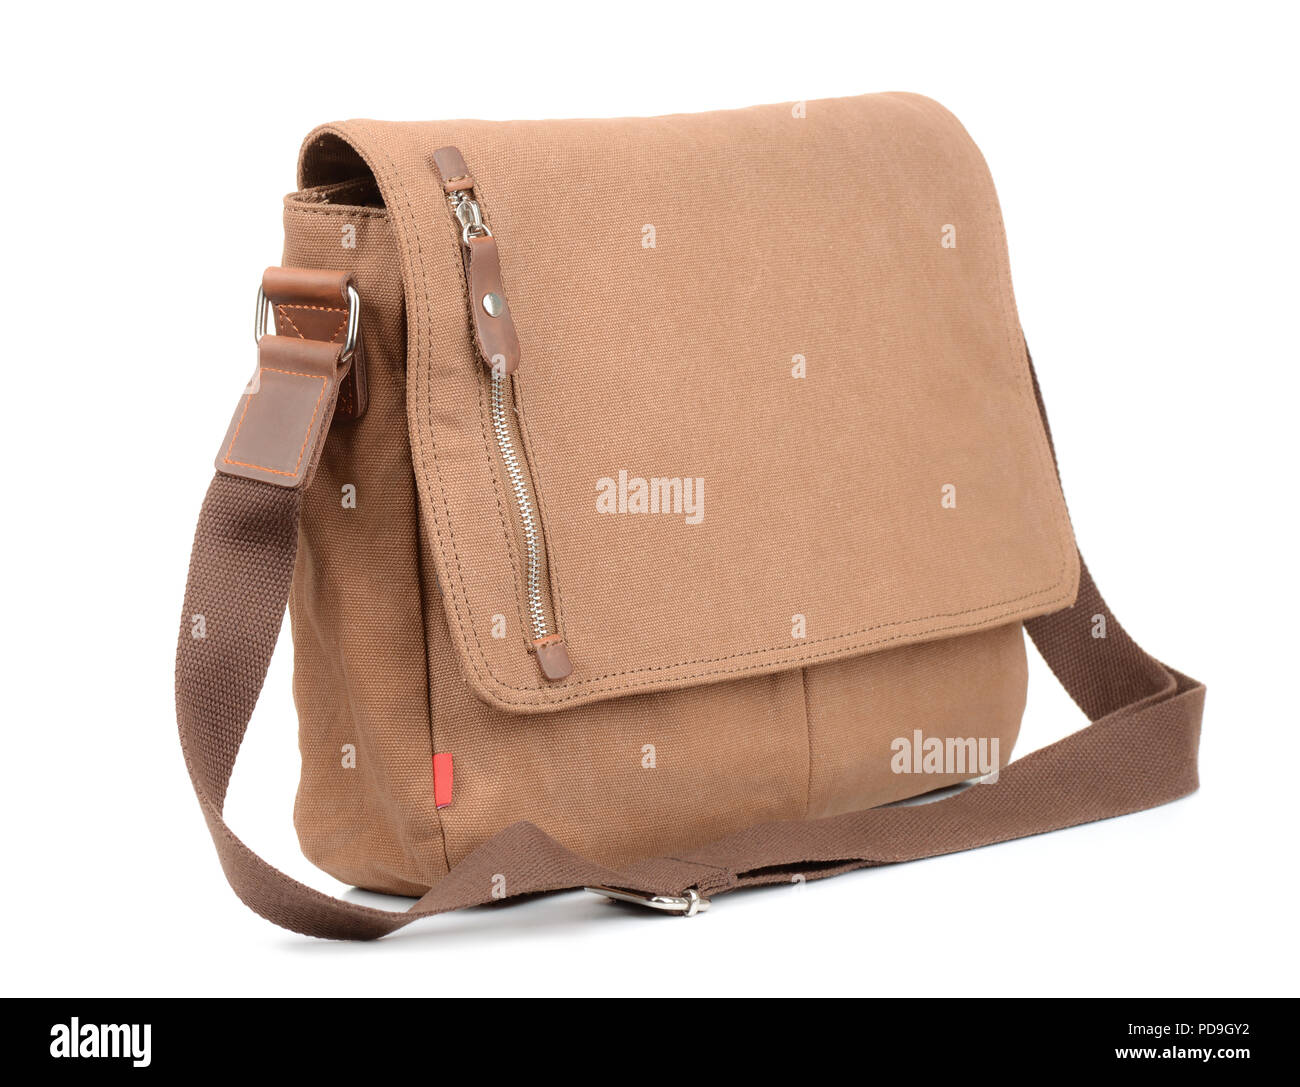 fd797b3be51f Carrying Strap Bag Stock Photos & Carrying Strap Bag Stock Images ...